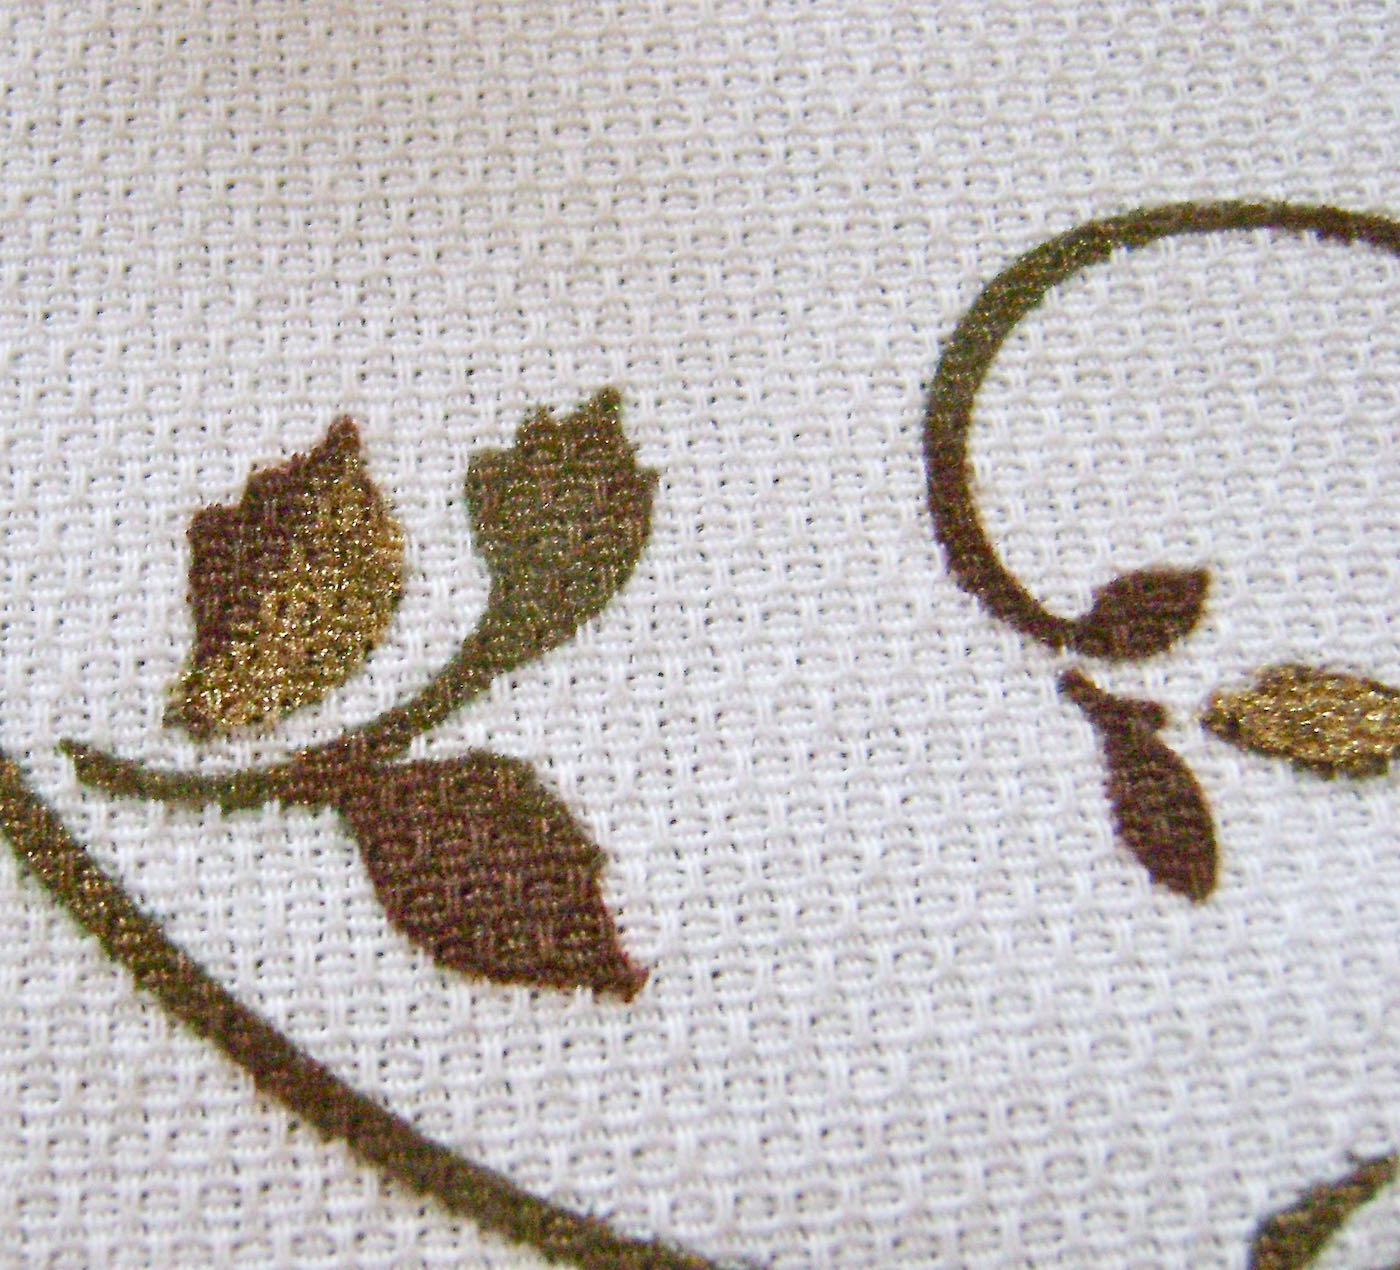 step 13 - Finish the runner by applying gold paint to some of the leaves and stems using a brush.  Layer the decorative runner on top of the burlap runner and arrange them on the table.